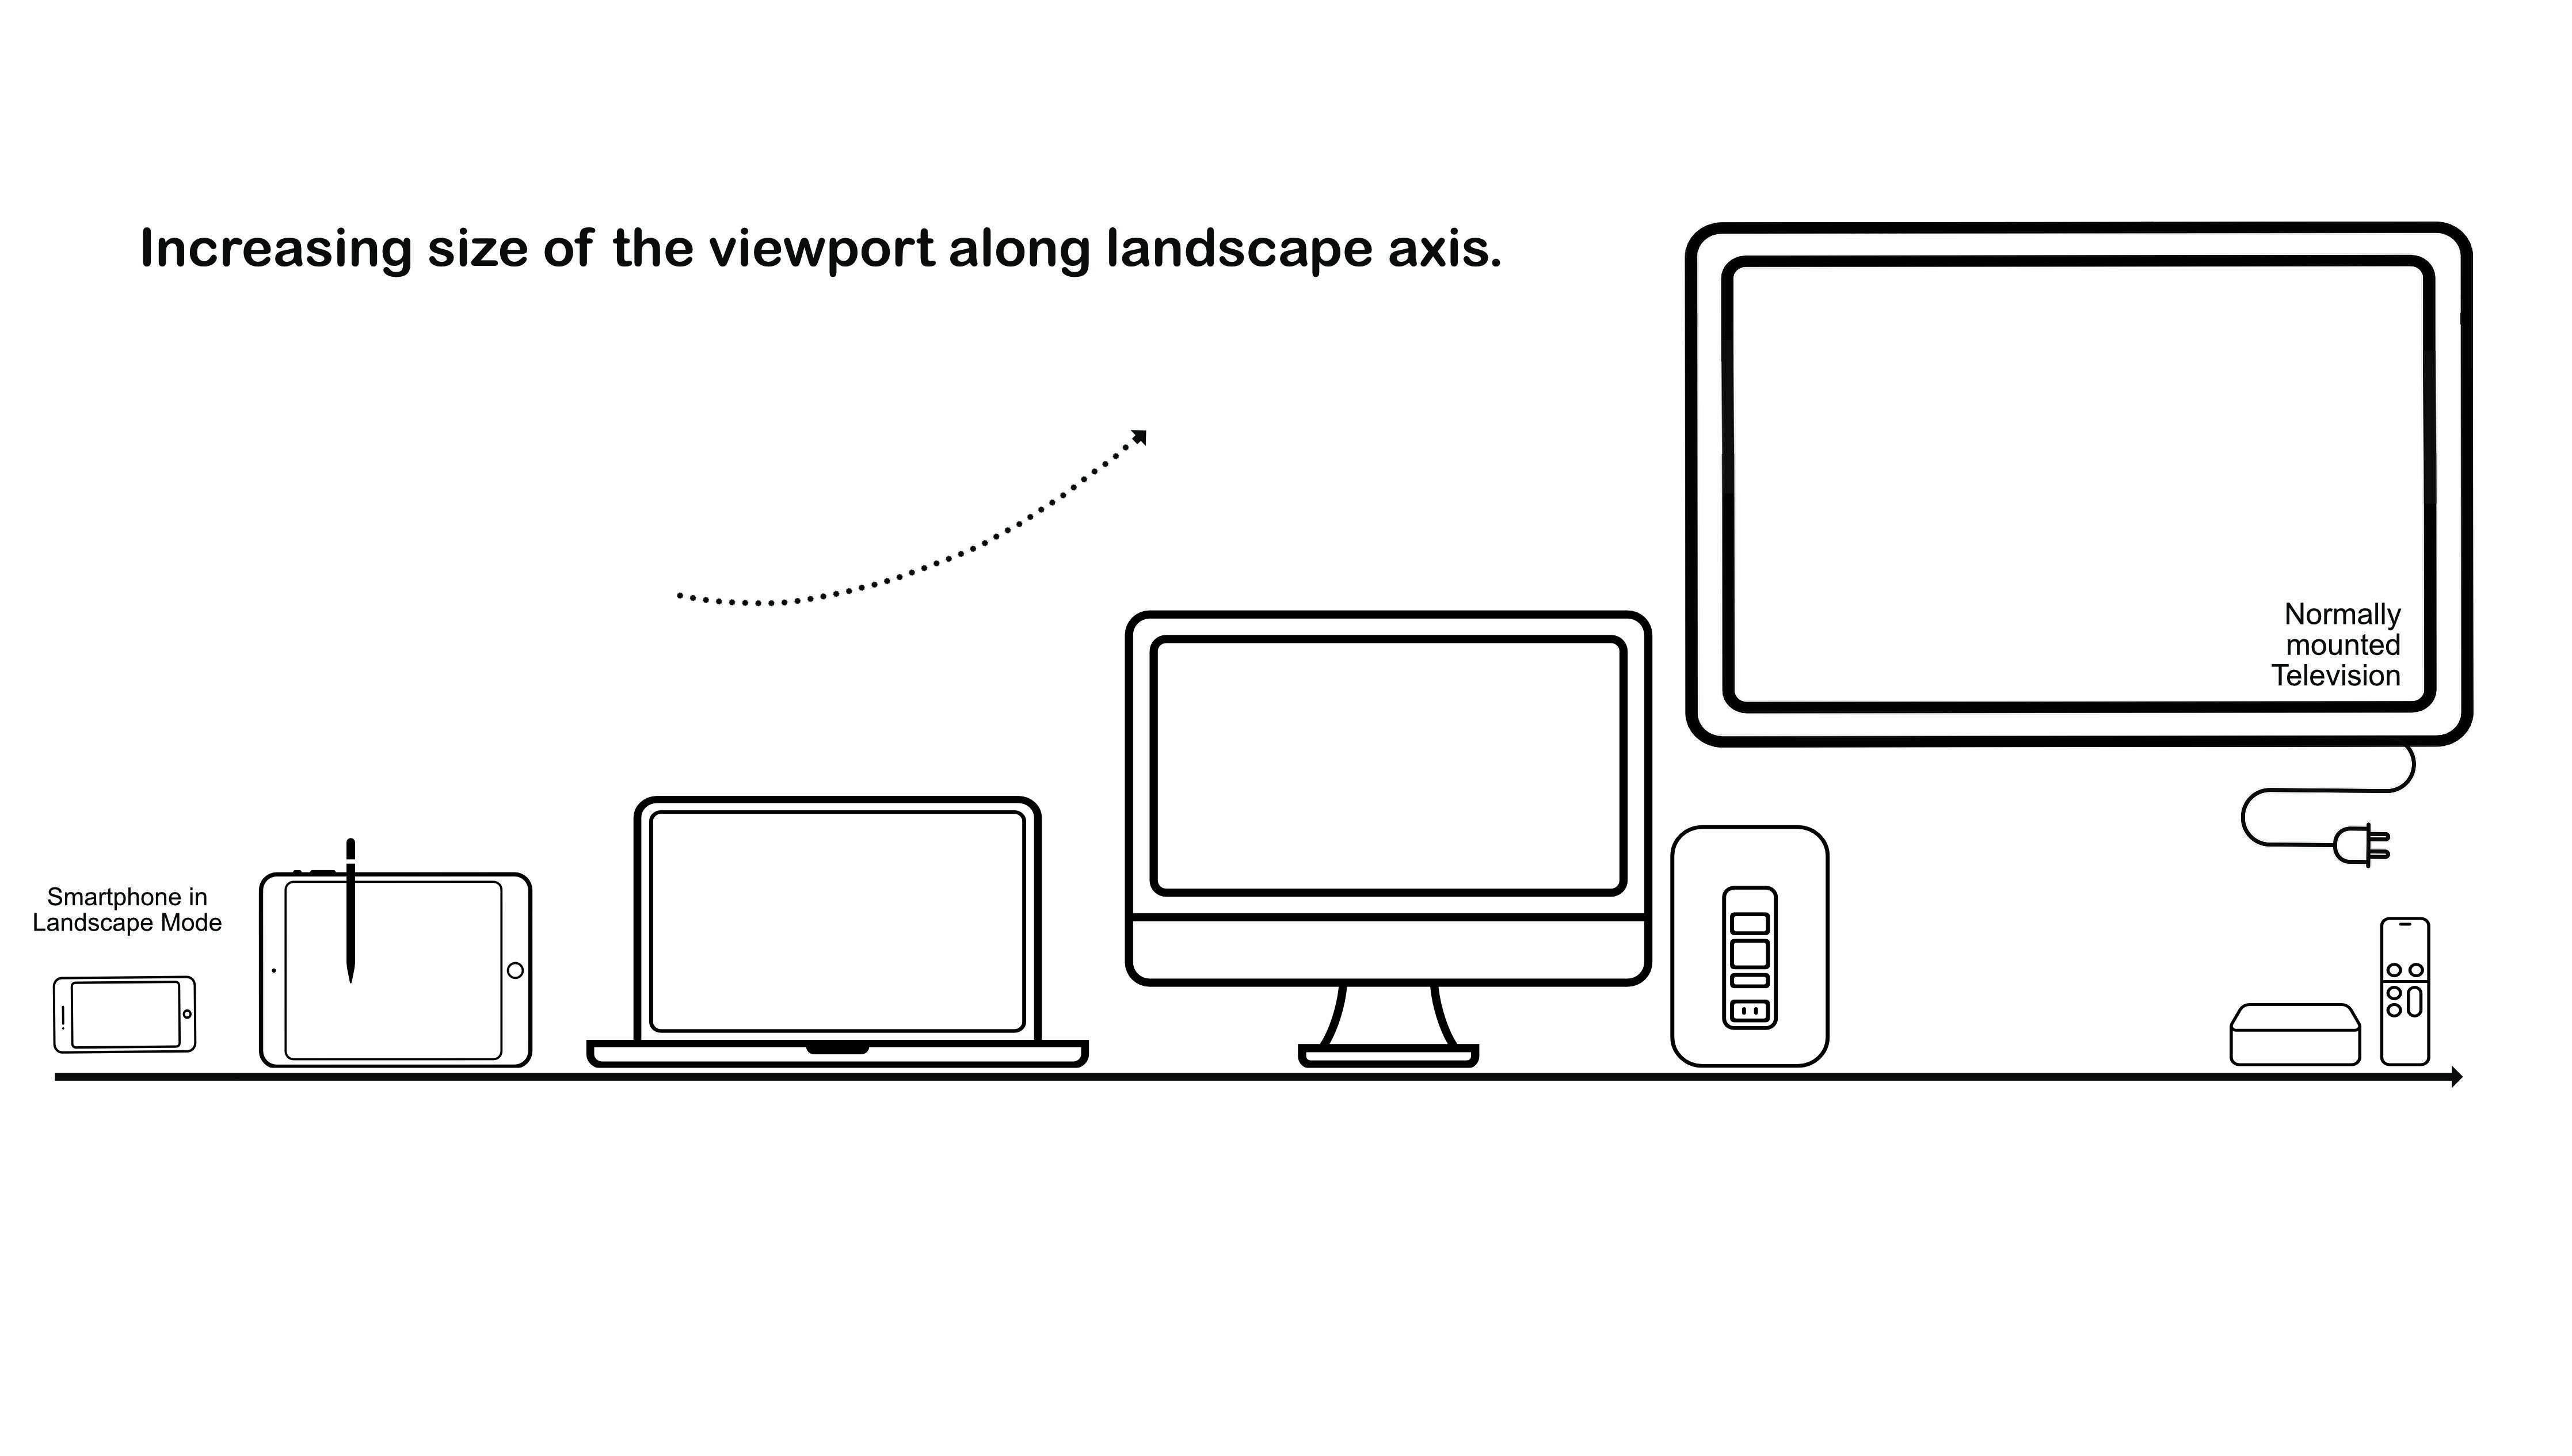 Device viewports along landscape axis.